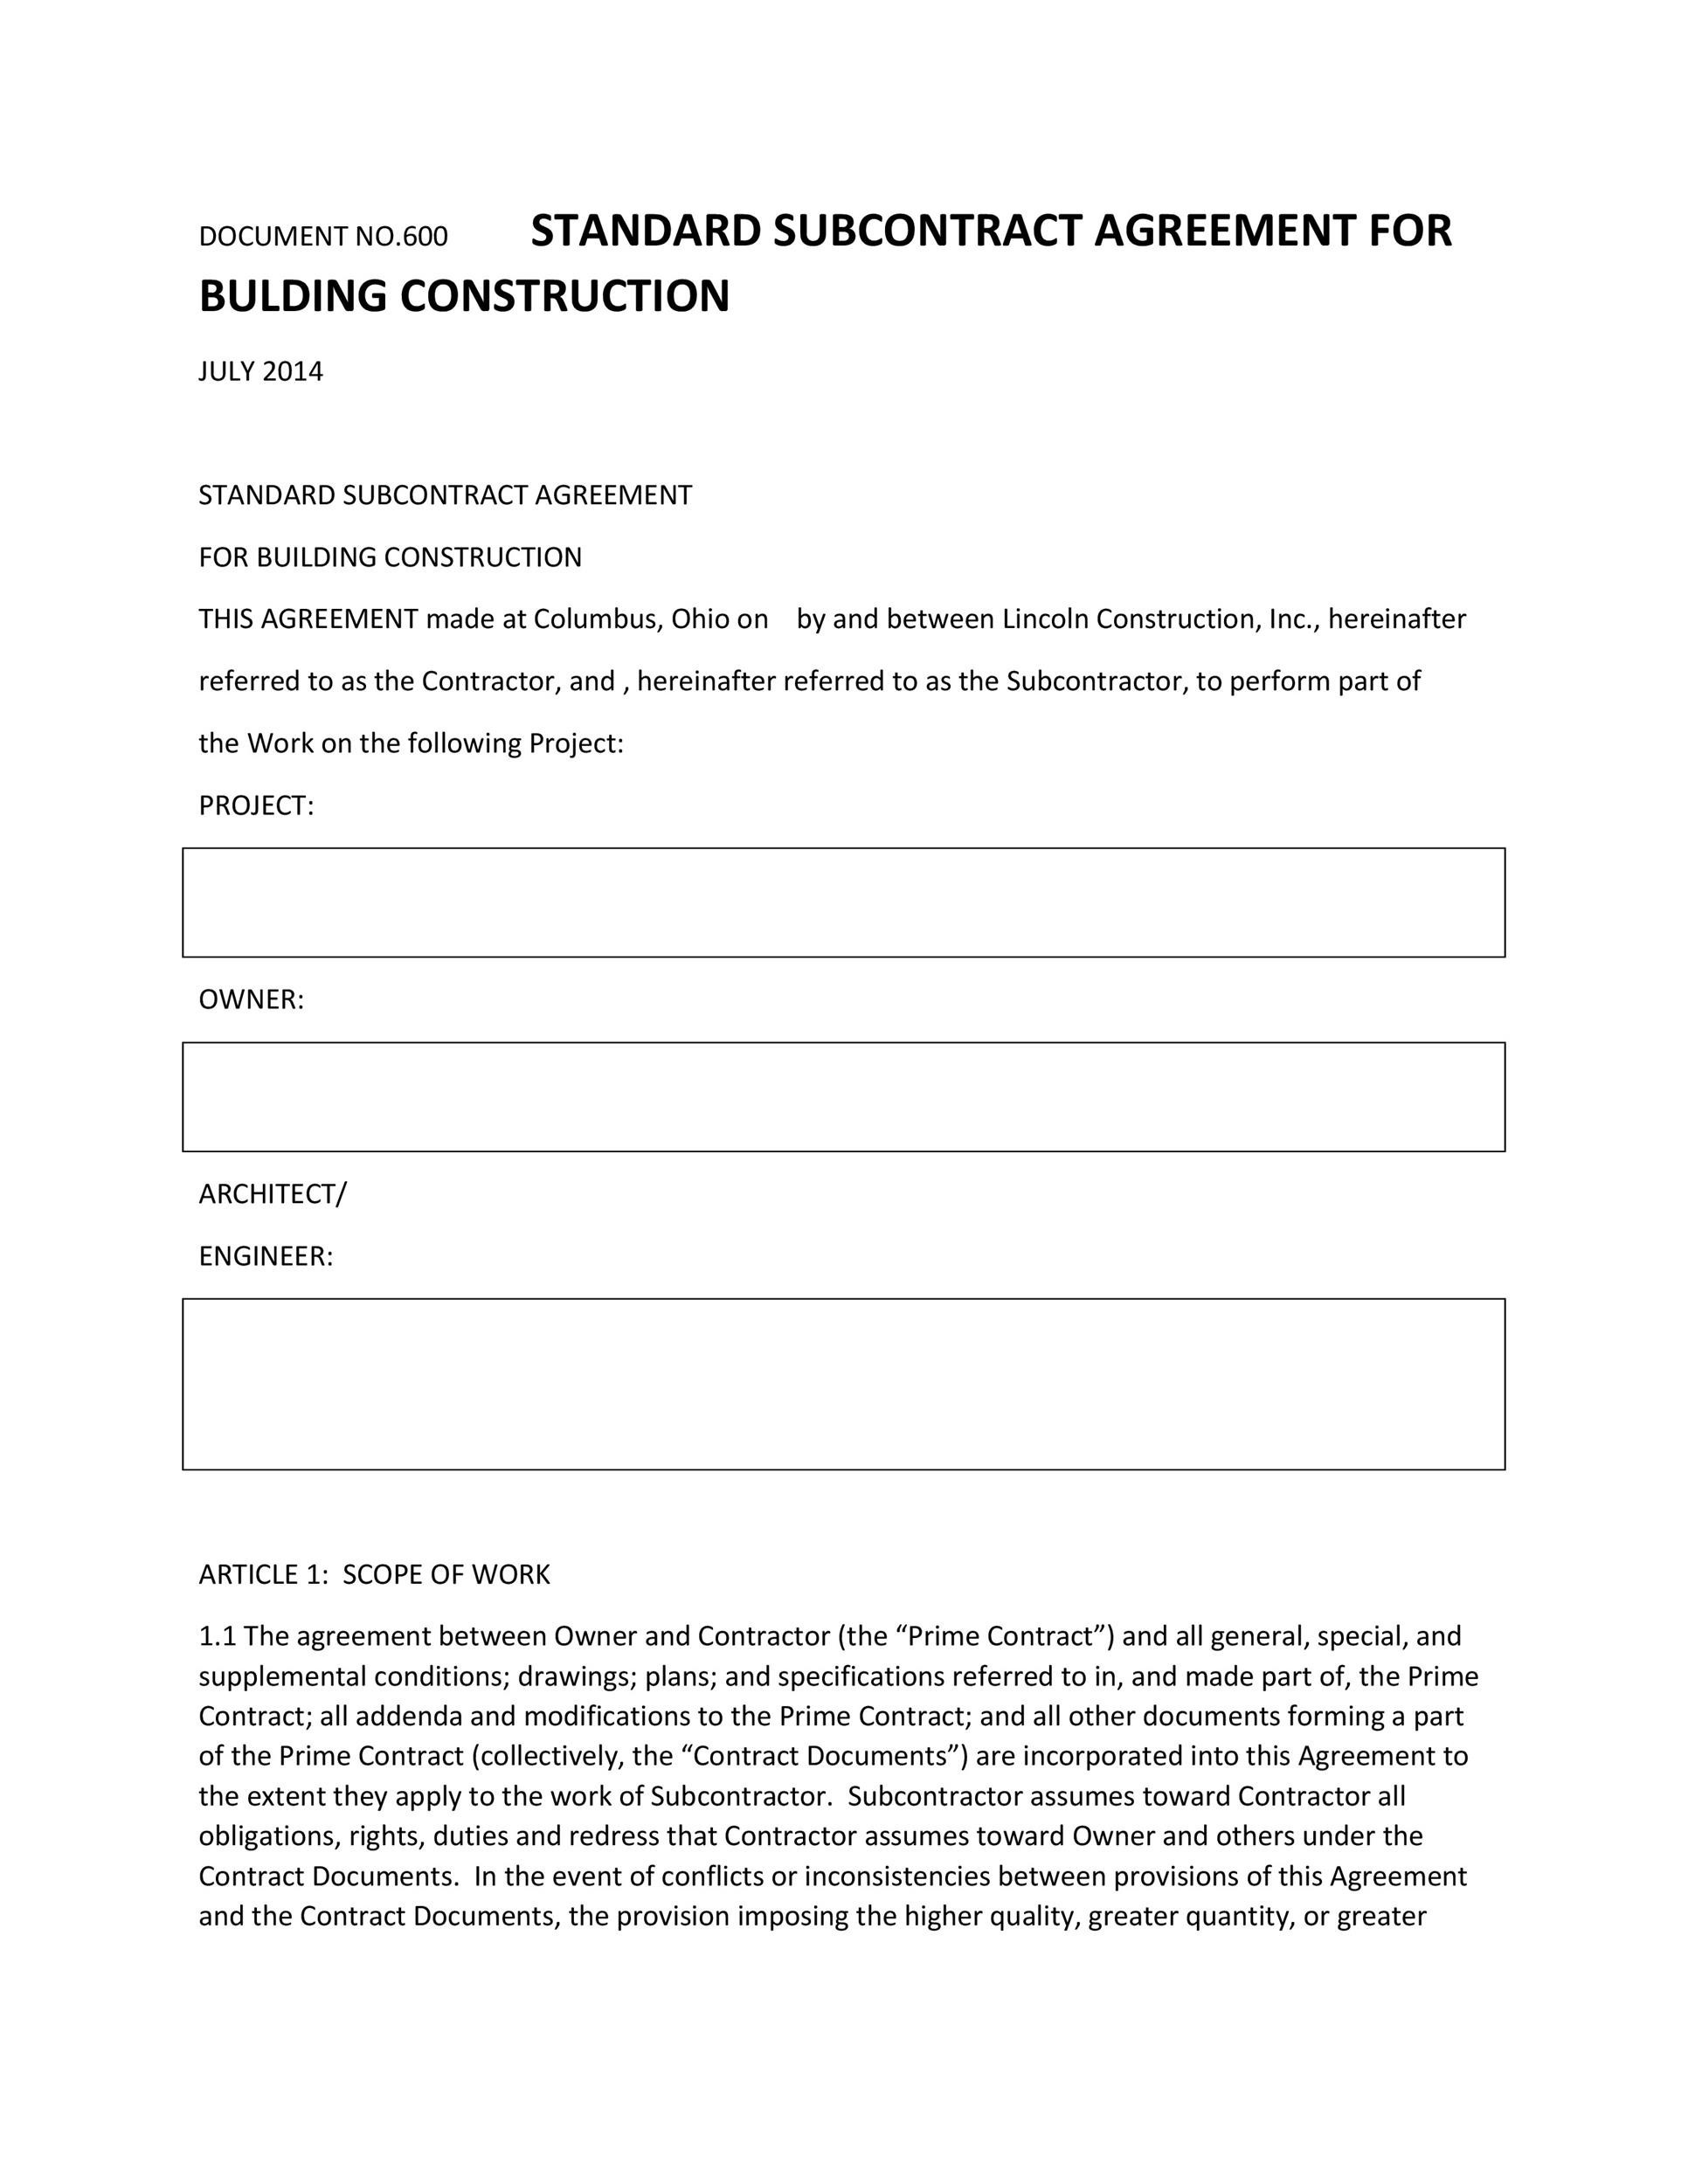 Free Subcontractor Agreement 23